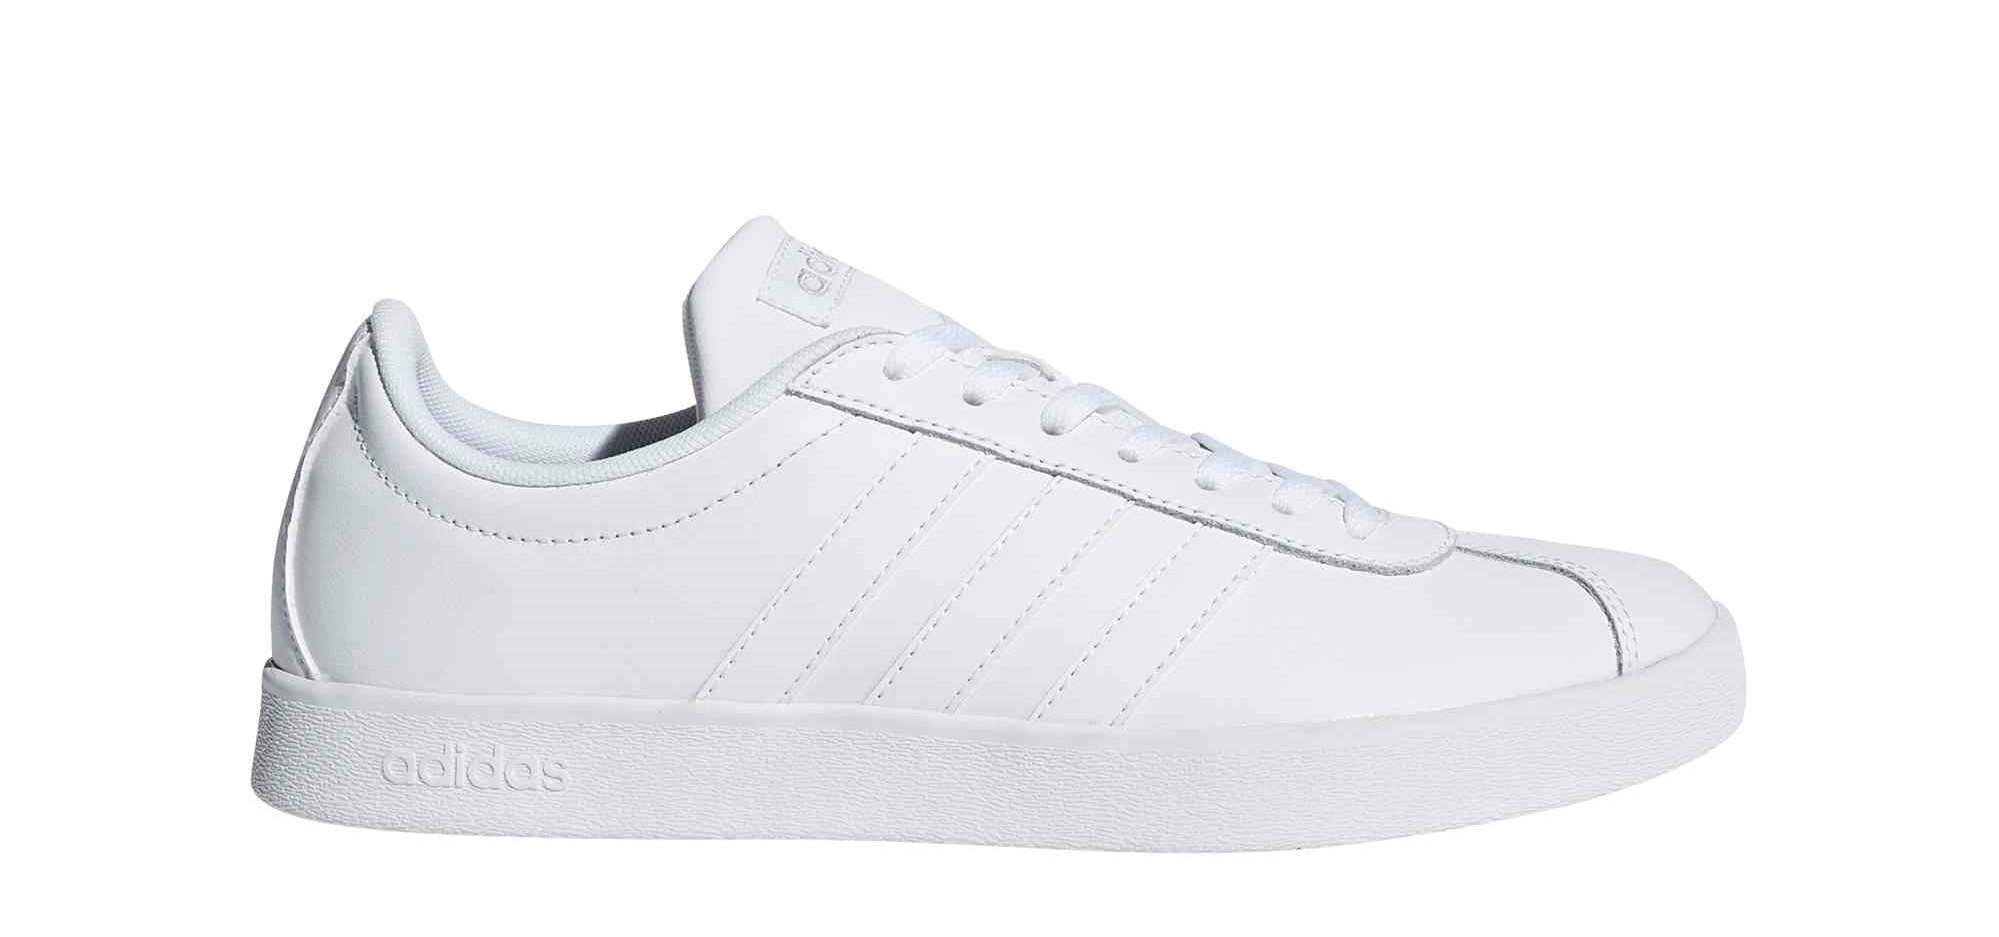 Adidas VL Court Dames sneakers